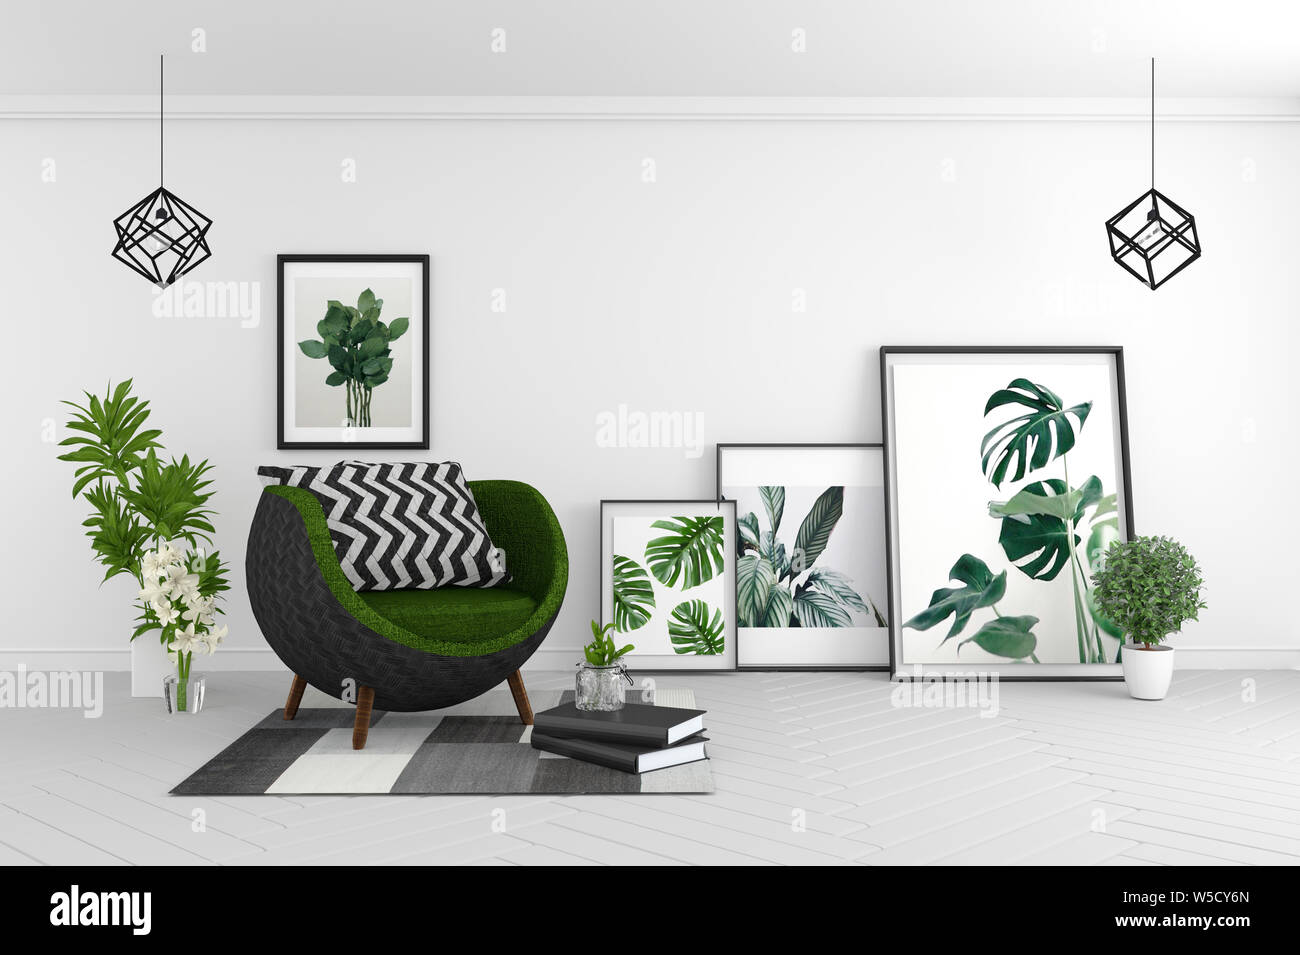 Living Room Interior Room Modern Tropical Style With Composition Minimal Design 3d Rendering Stock Photo Alamy